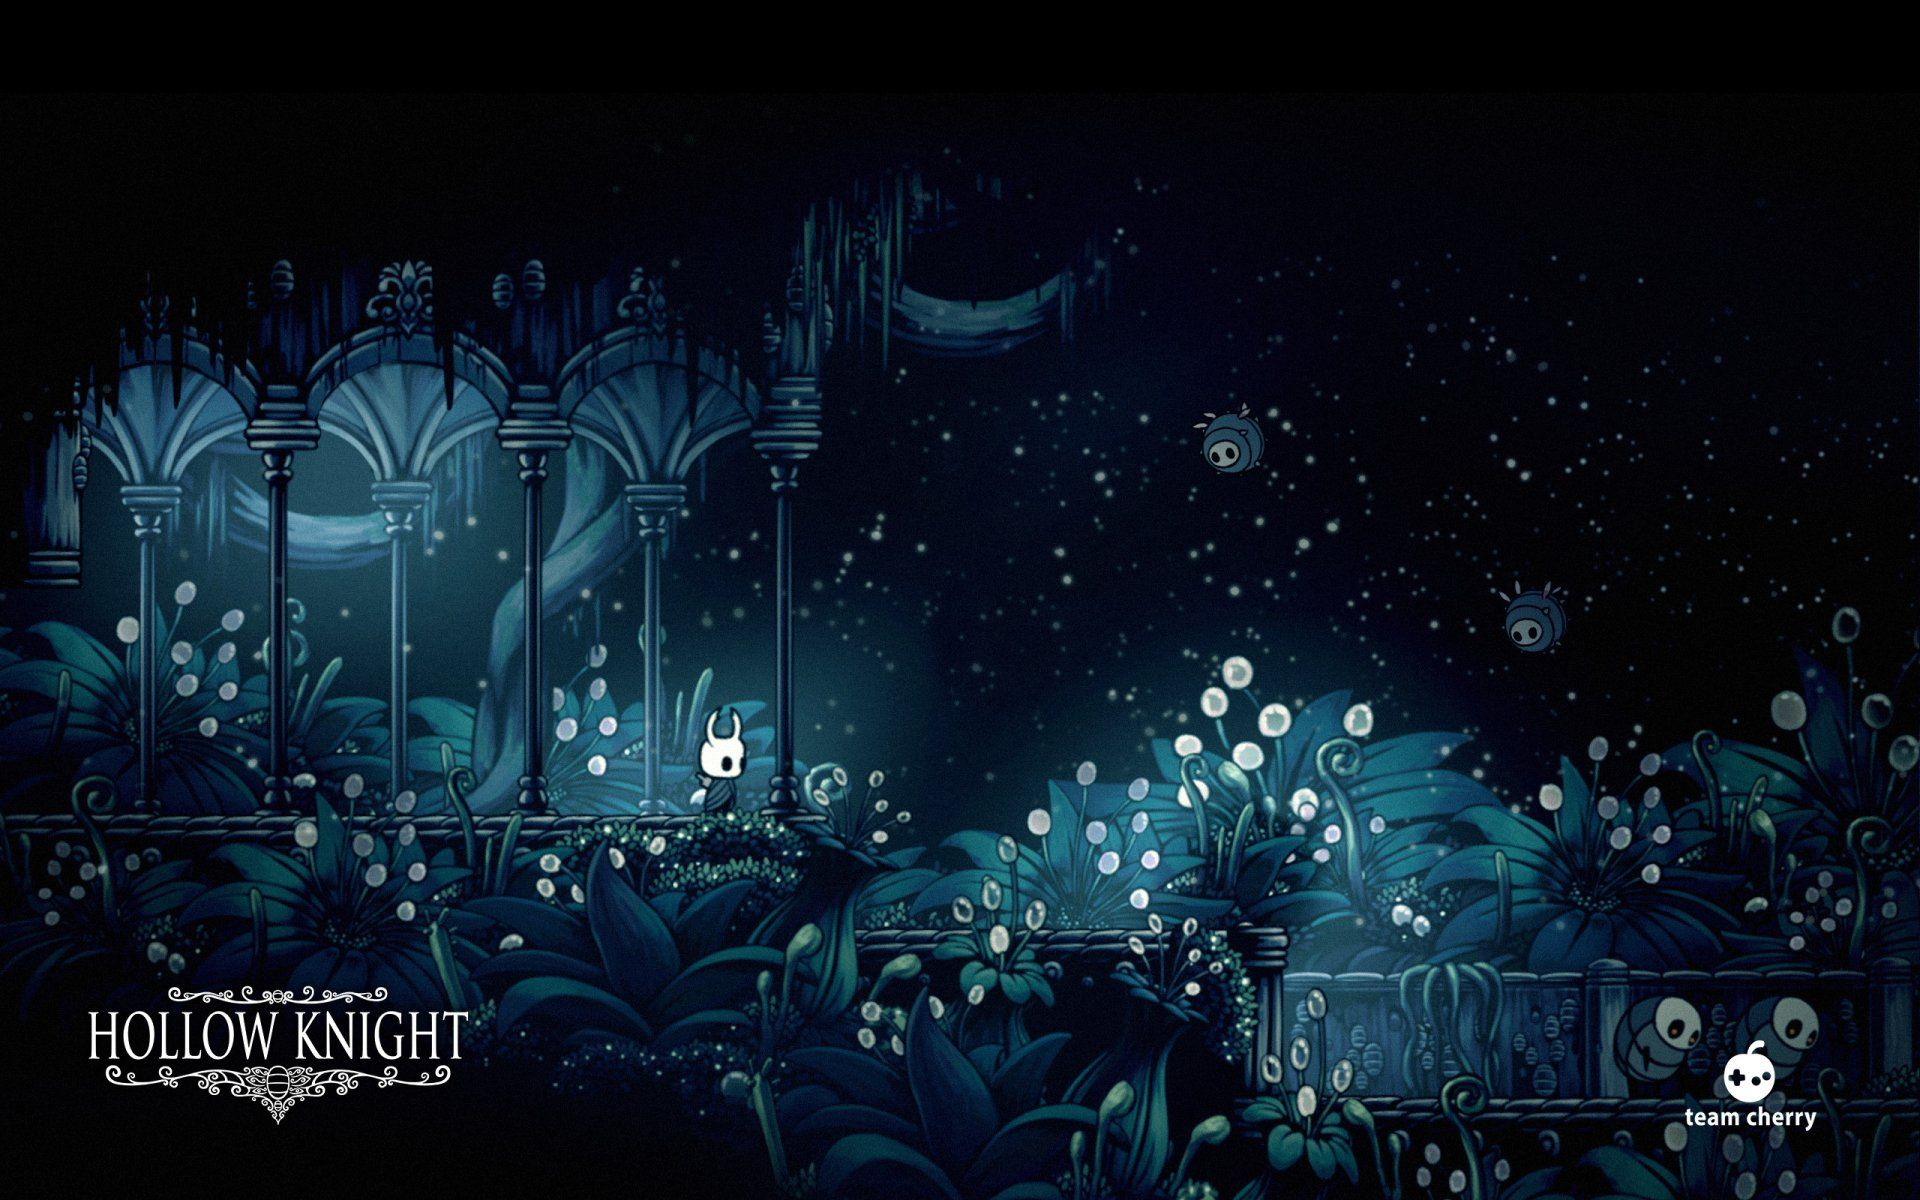 2560x1600 Hollow Knight Wallpaper Background Image View Download Comment And Rate Wallpaper Abys Background Images Wallpaper Backgrounds Theme Background